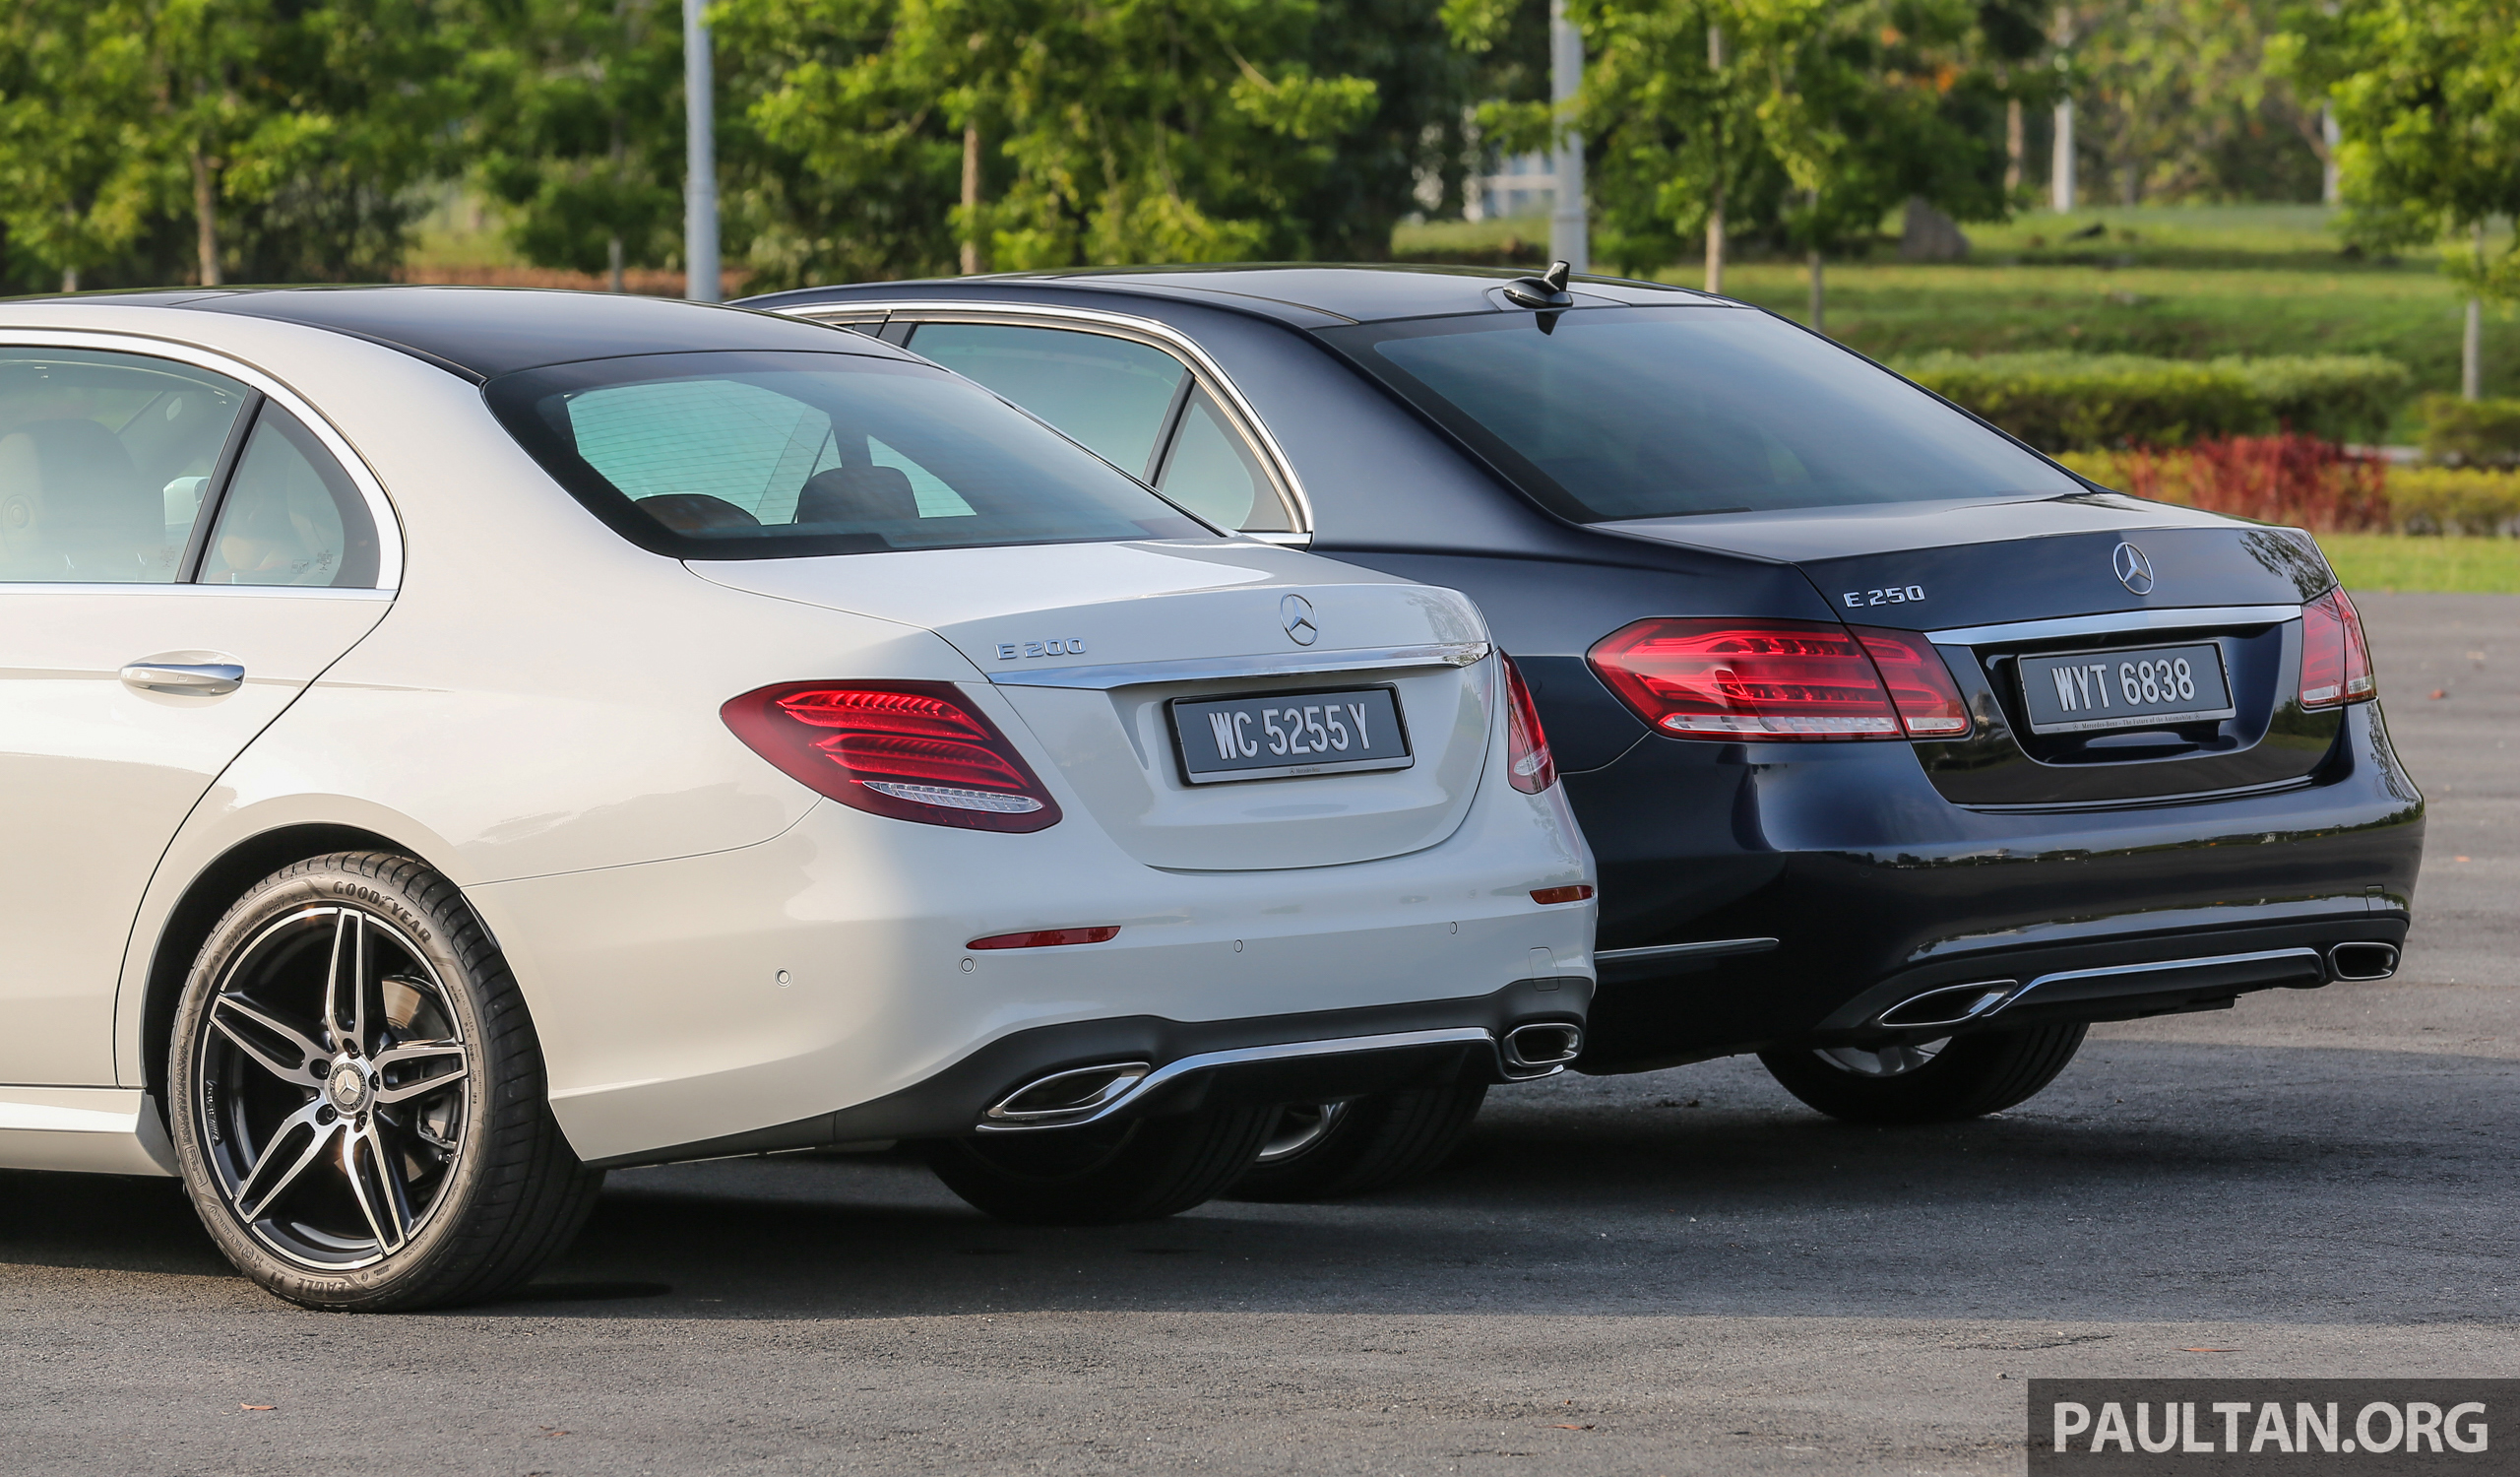 GALLERY Mercedes Benz E Class W213 Vs W212 Paul Tan